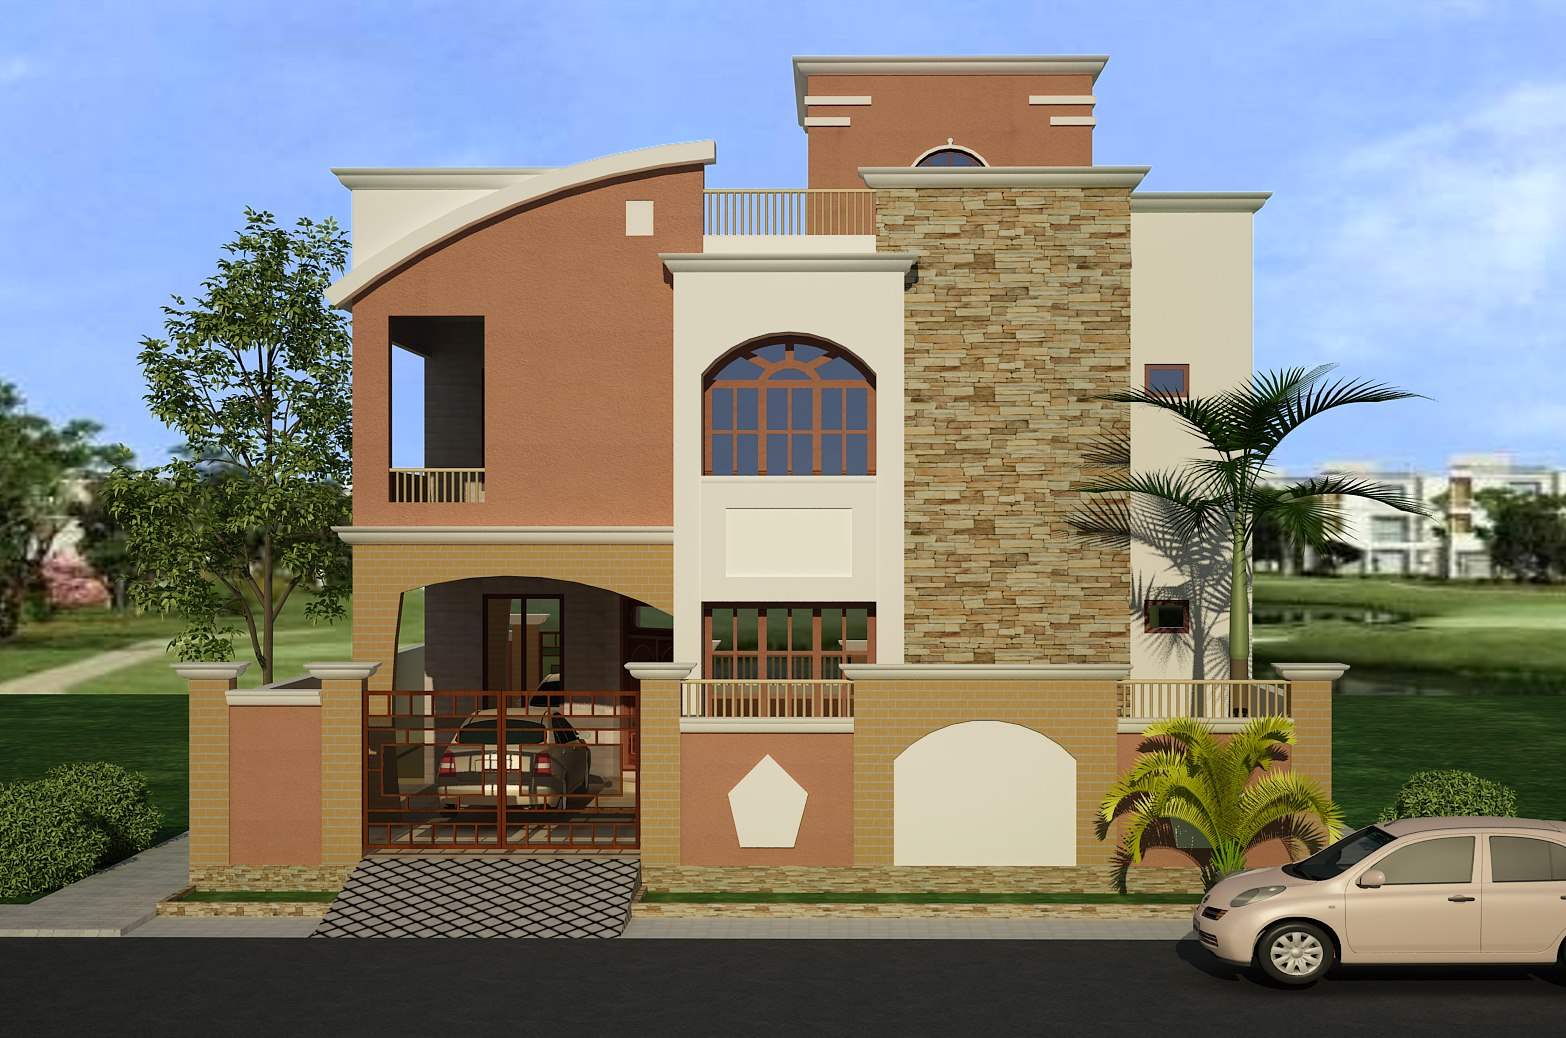 3d front elevation 1 kinal corner plot house design in islamabad - Front Home Designs